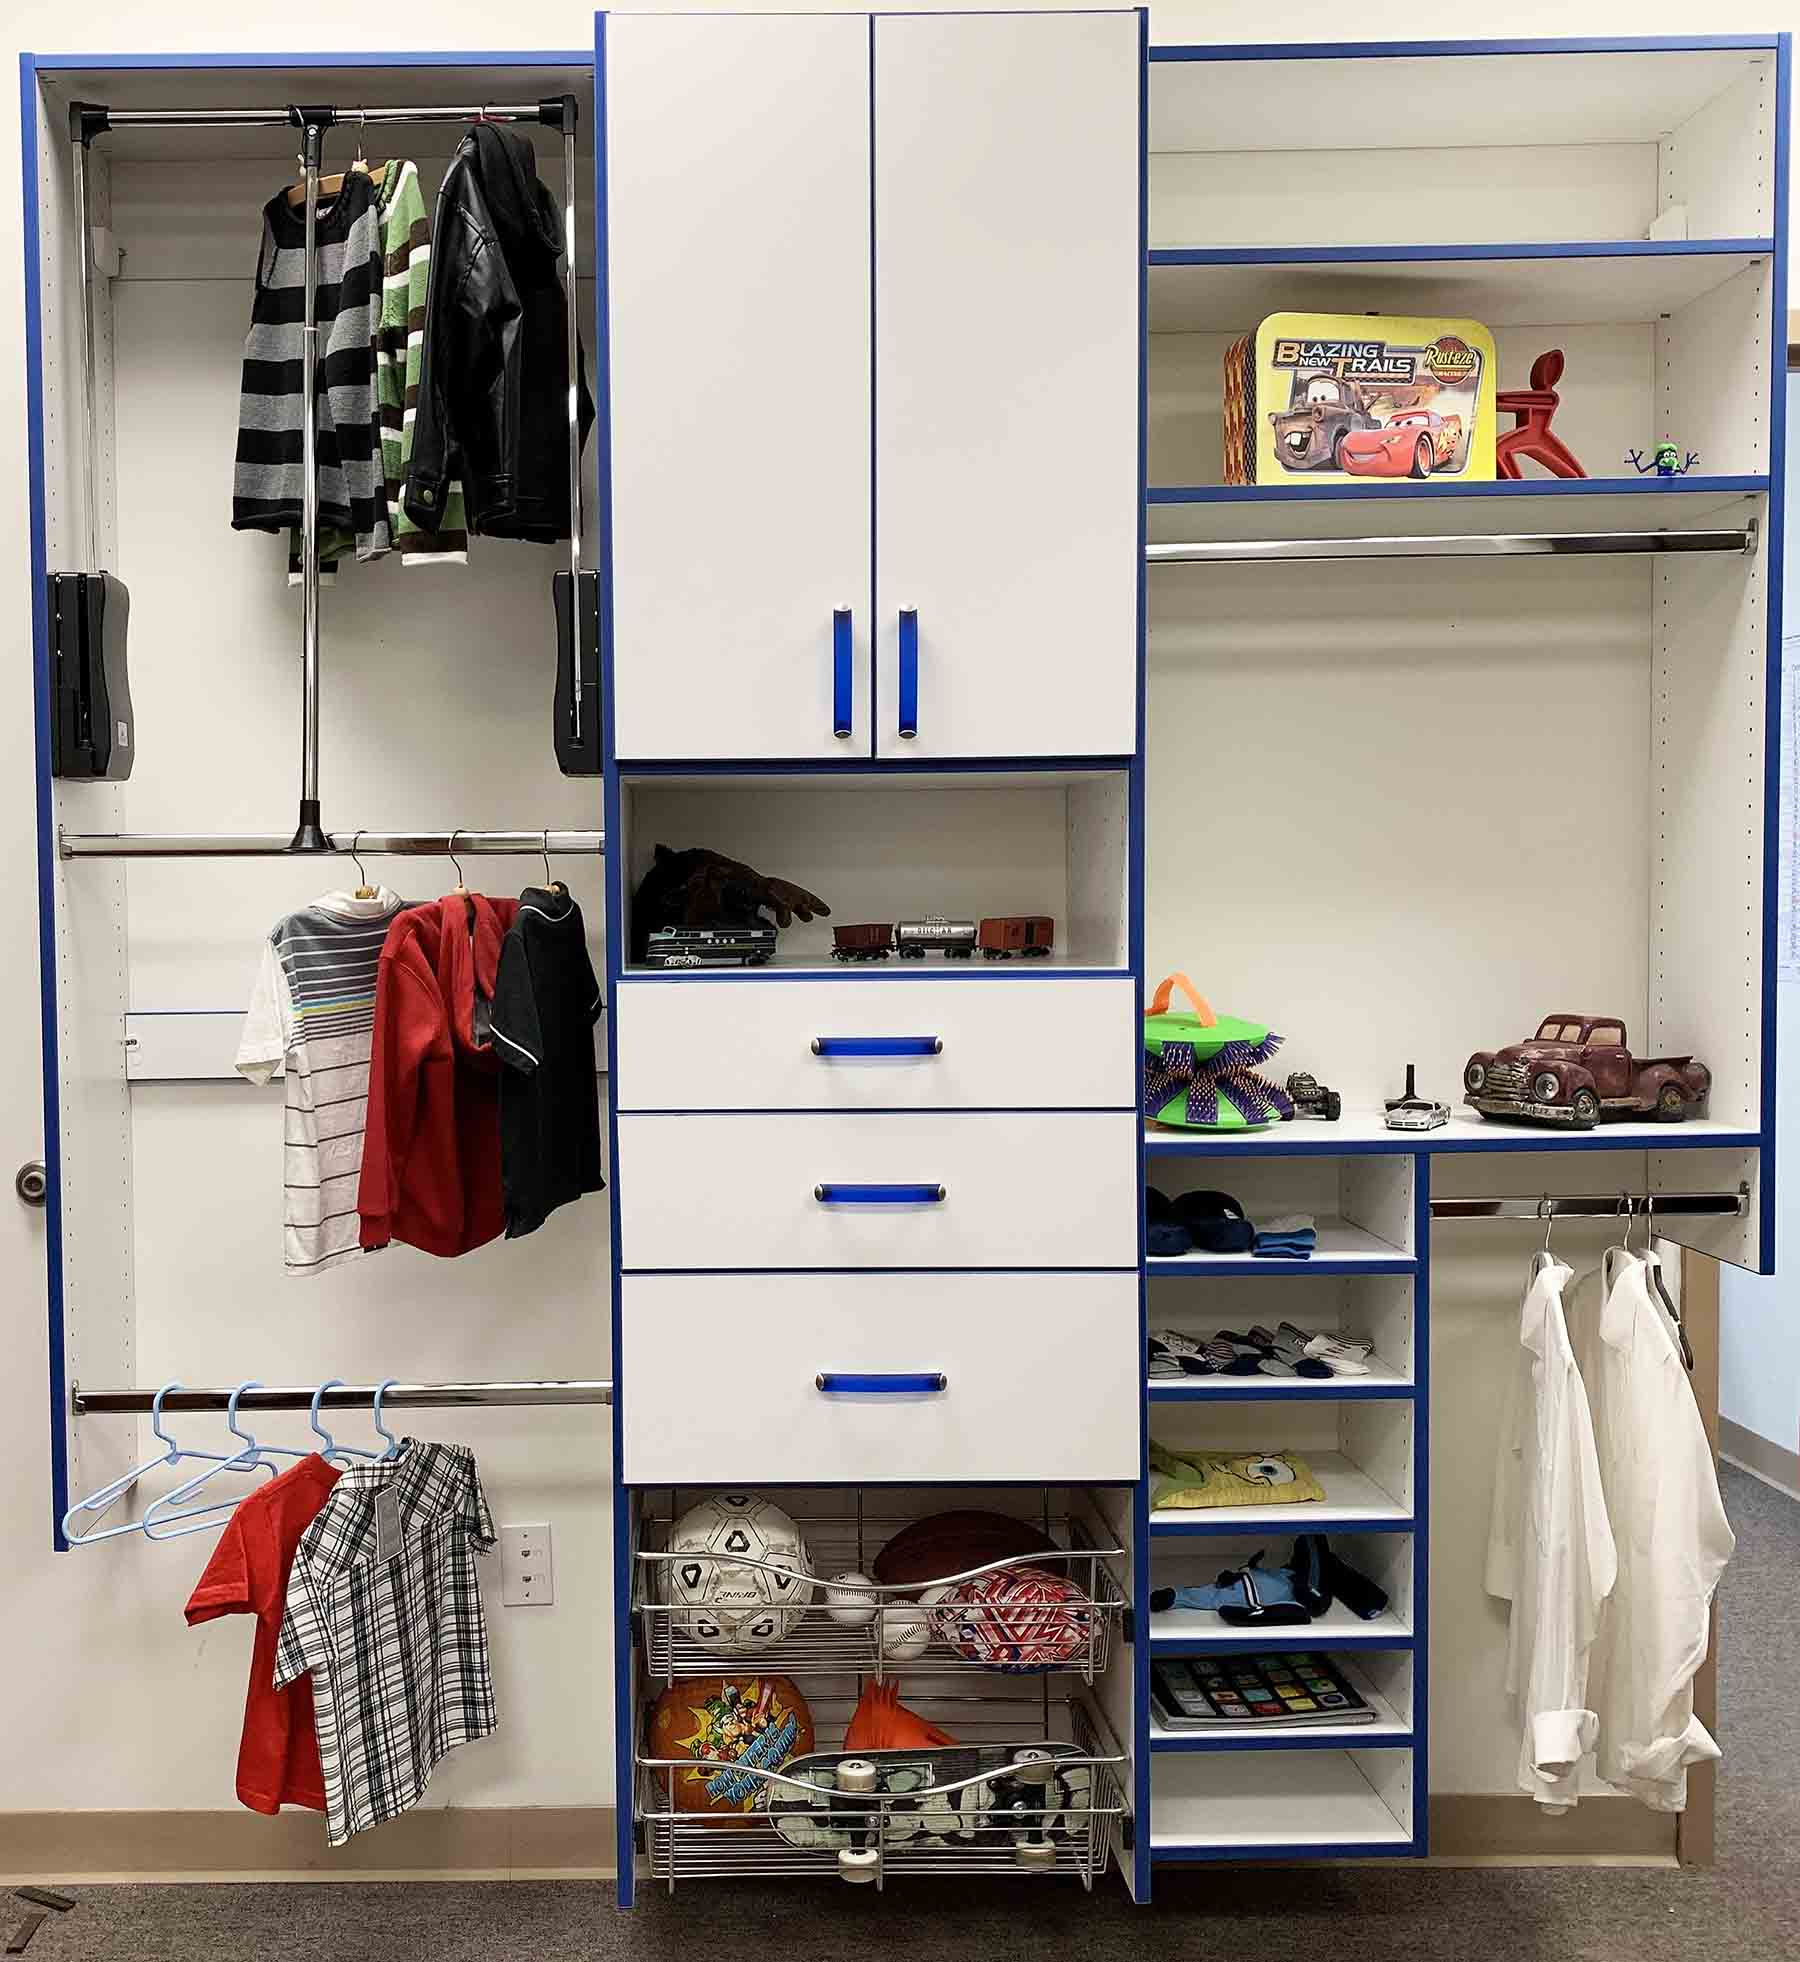 Children's closet with toys and clothes organized